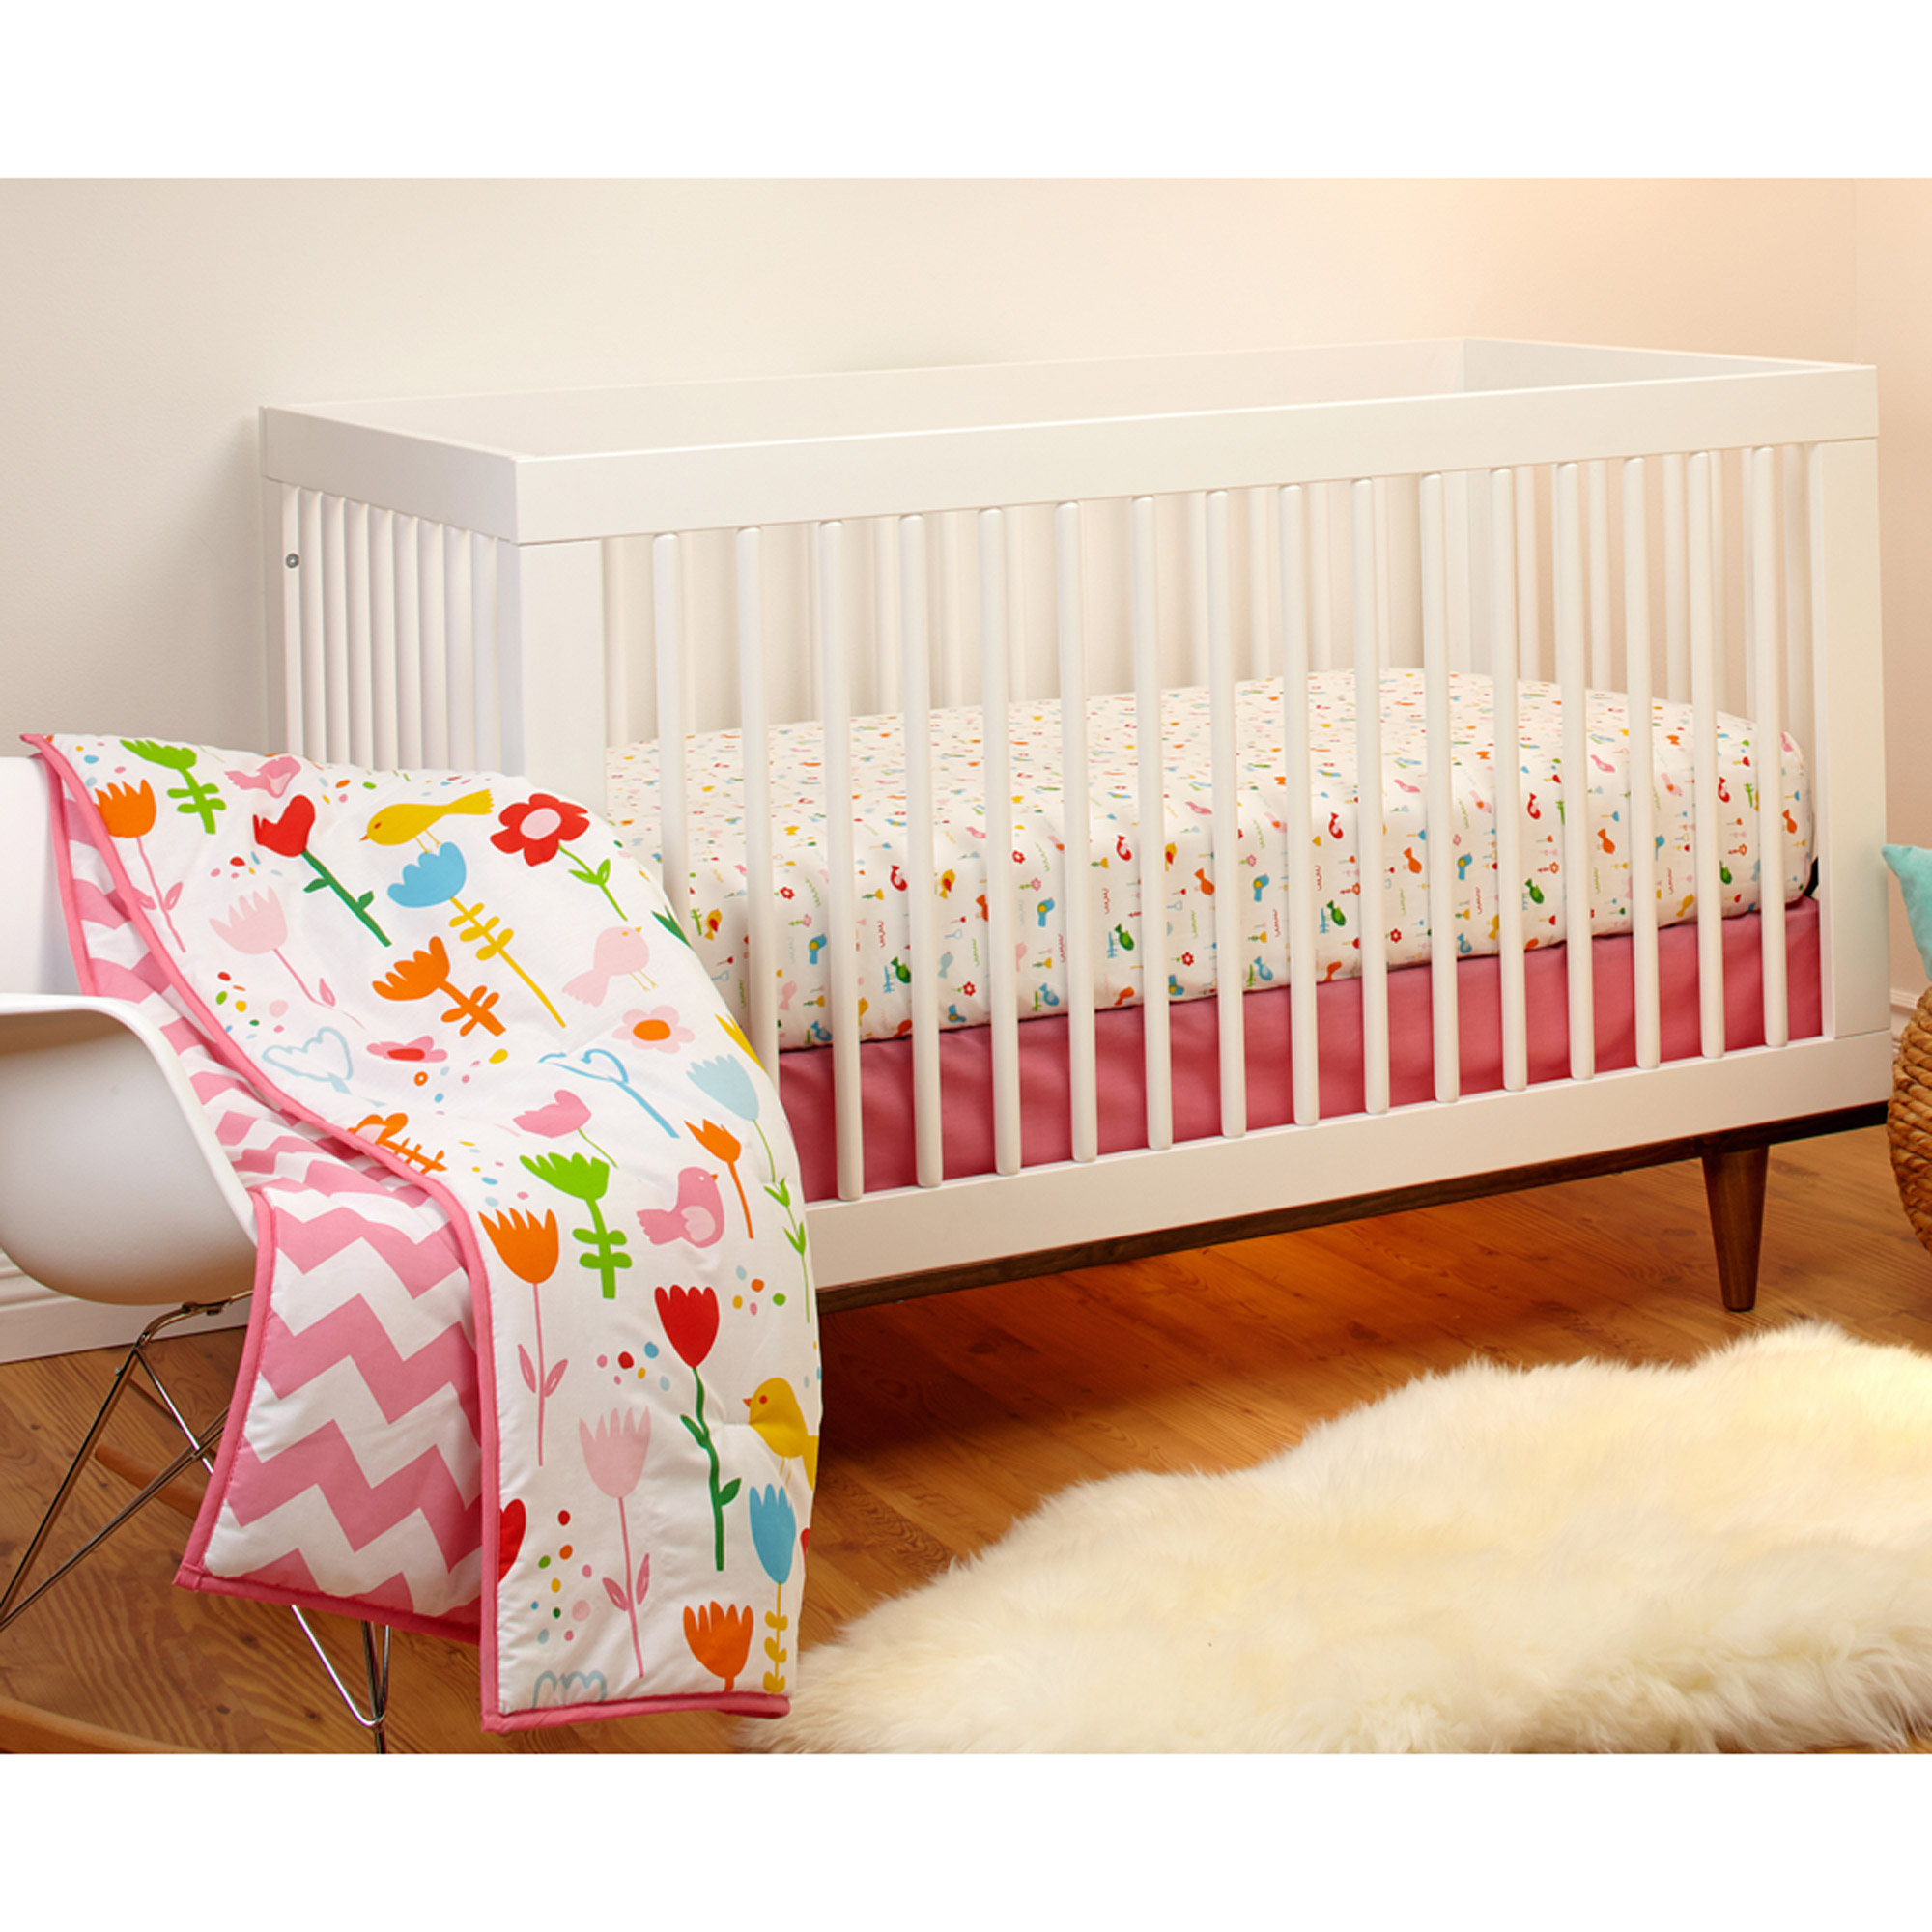 Little Bedding by Nojo by Little Bedding by Nojo Reversible Sweet Tweet/Pink Chevron Print 3-Piece Crib Bedding Set